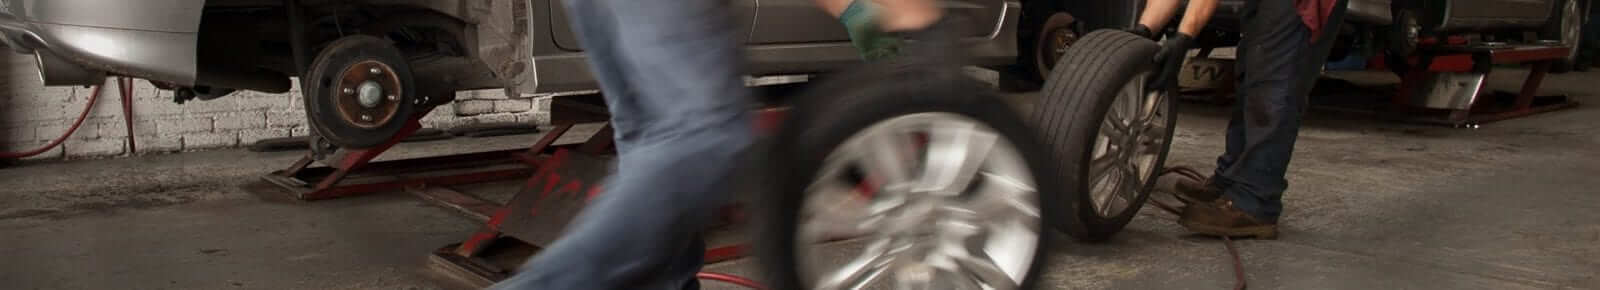 Tires Replacement services in New Orleans LA - NOLA Automotive Repairs